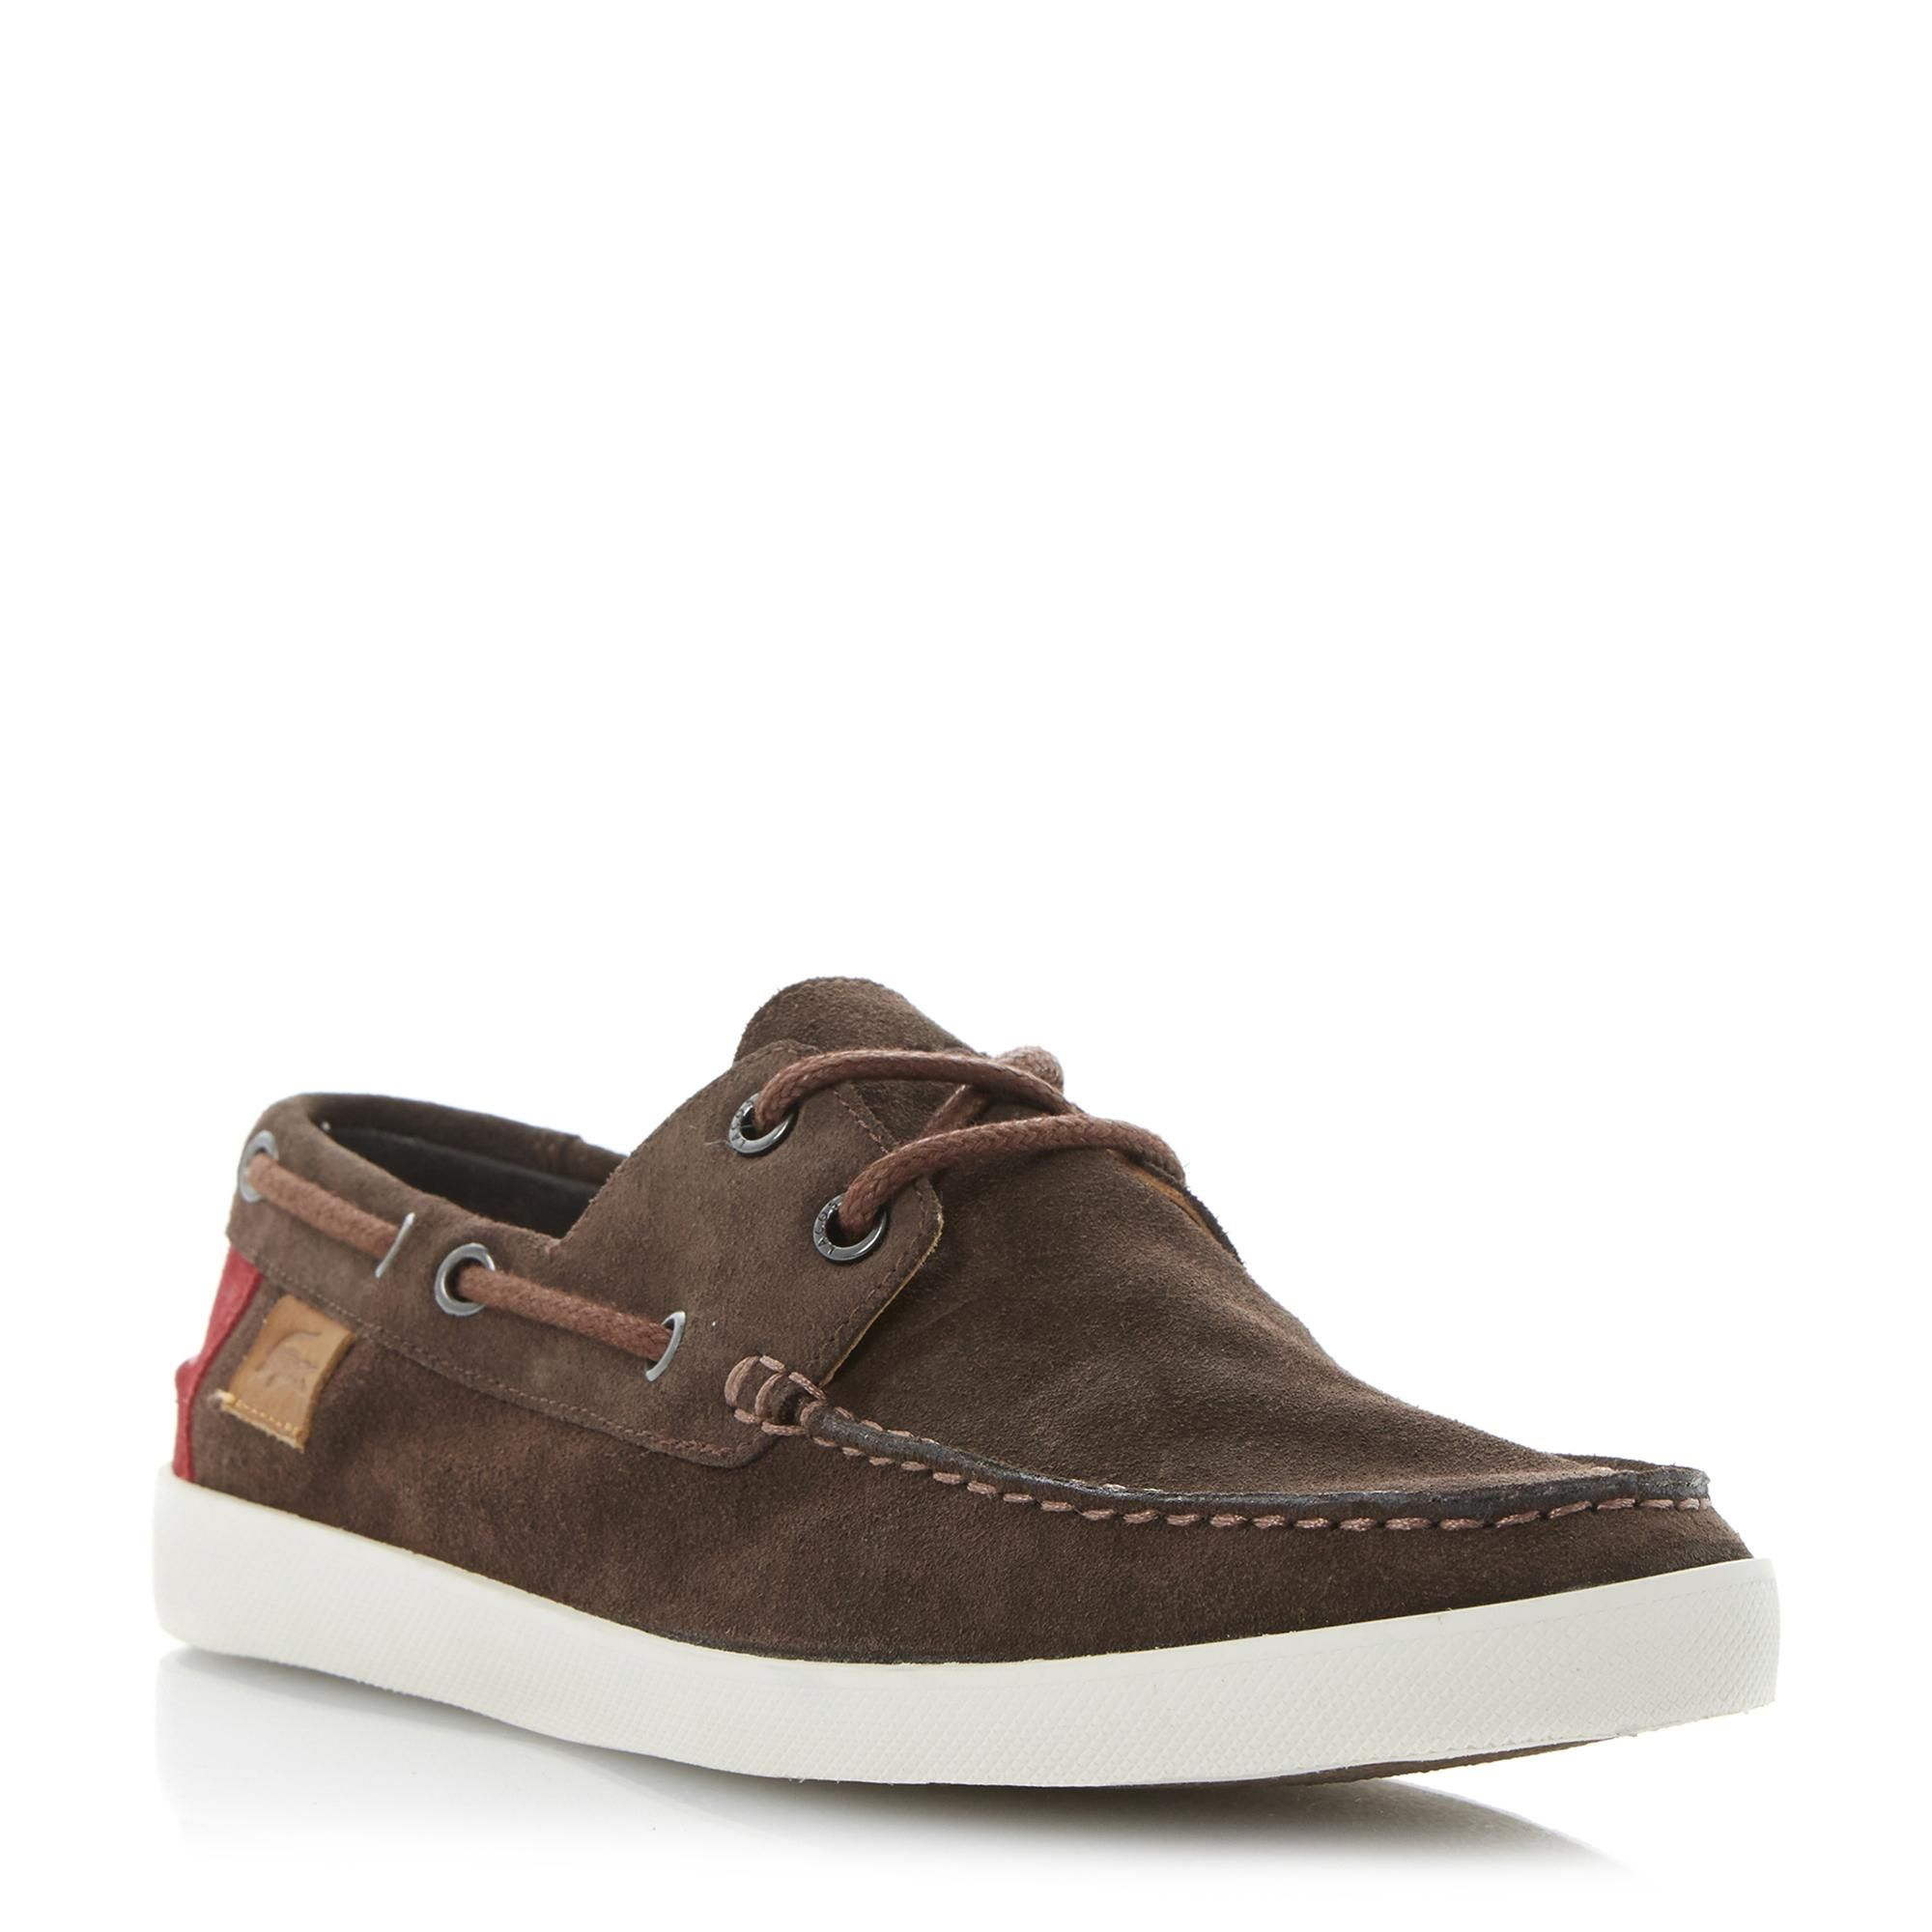 9b171e55a LACOSTE MENS KEELLSON - Suede Boat Shoe - brown